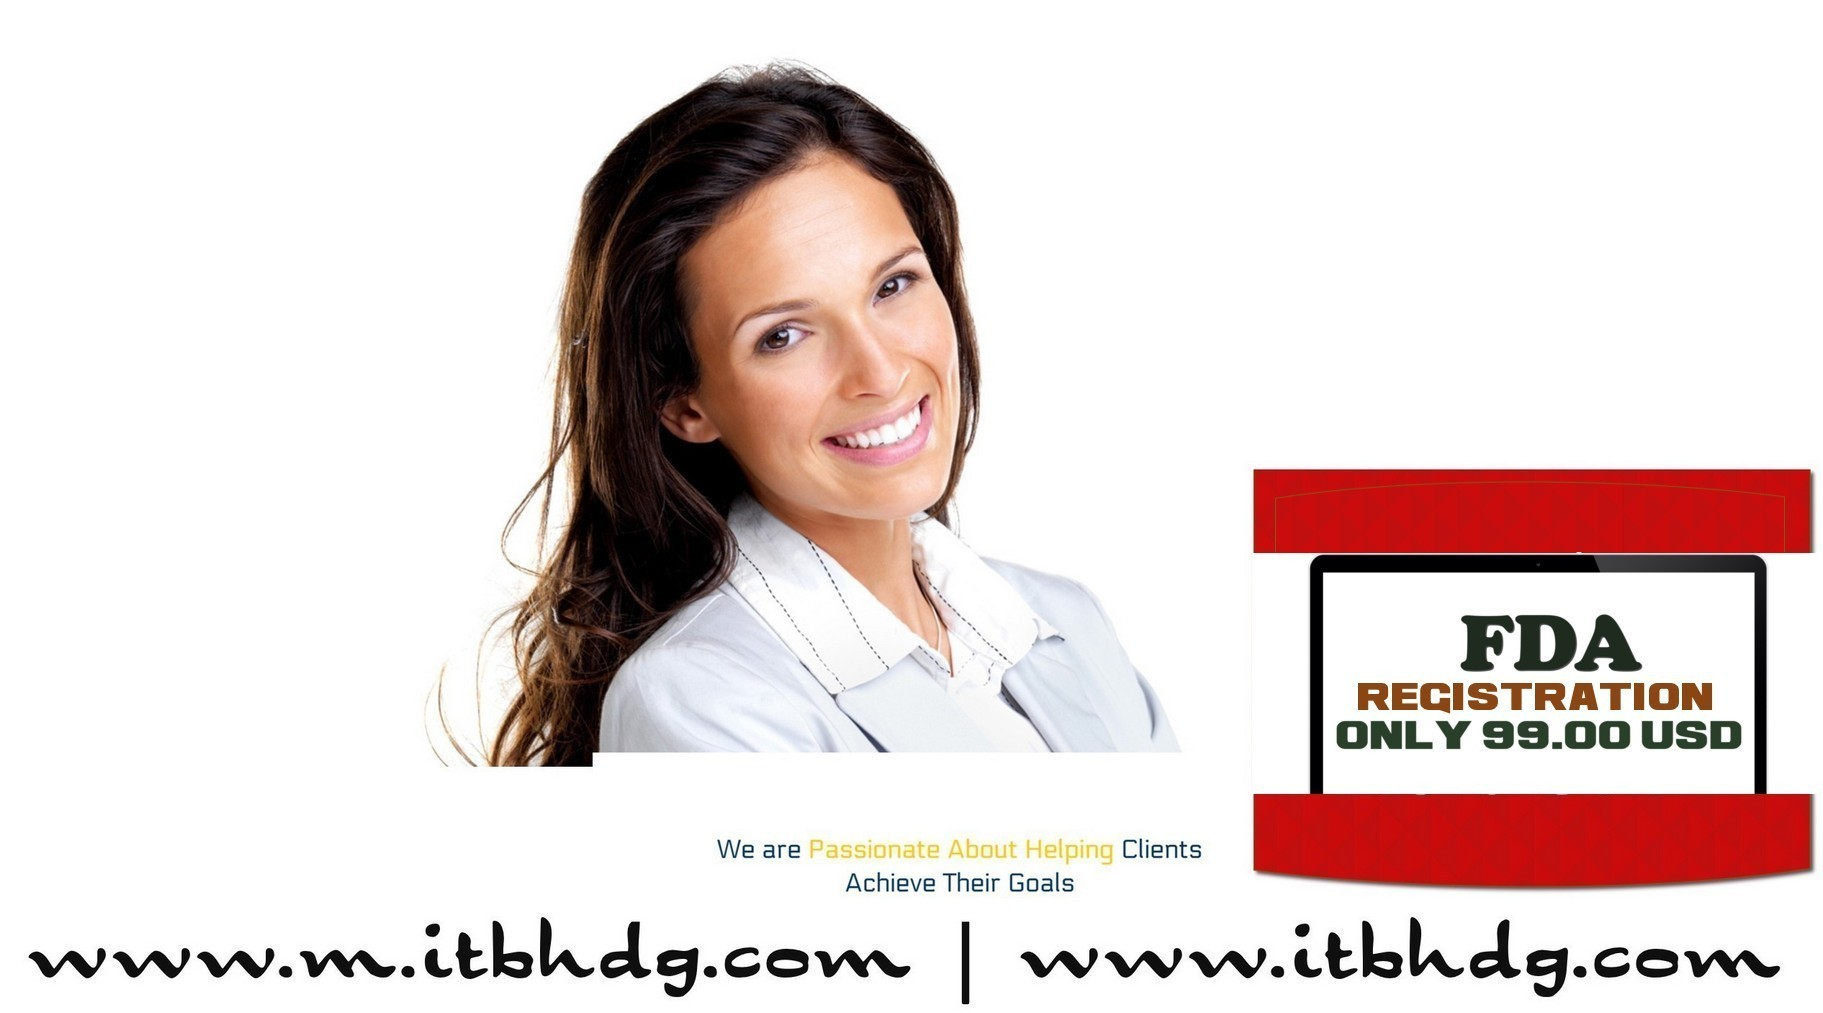 Register your company with the FDA | Save up to 75% today | www.m.itbhdg.com | www.itbhdg.com